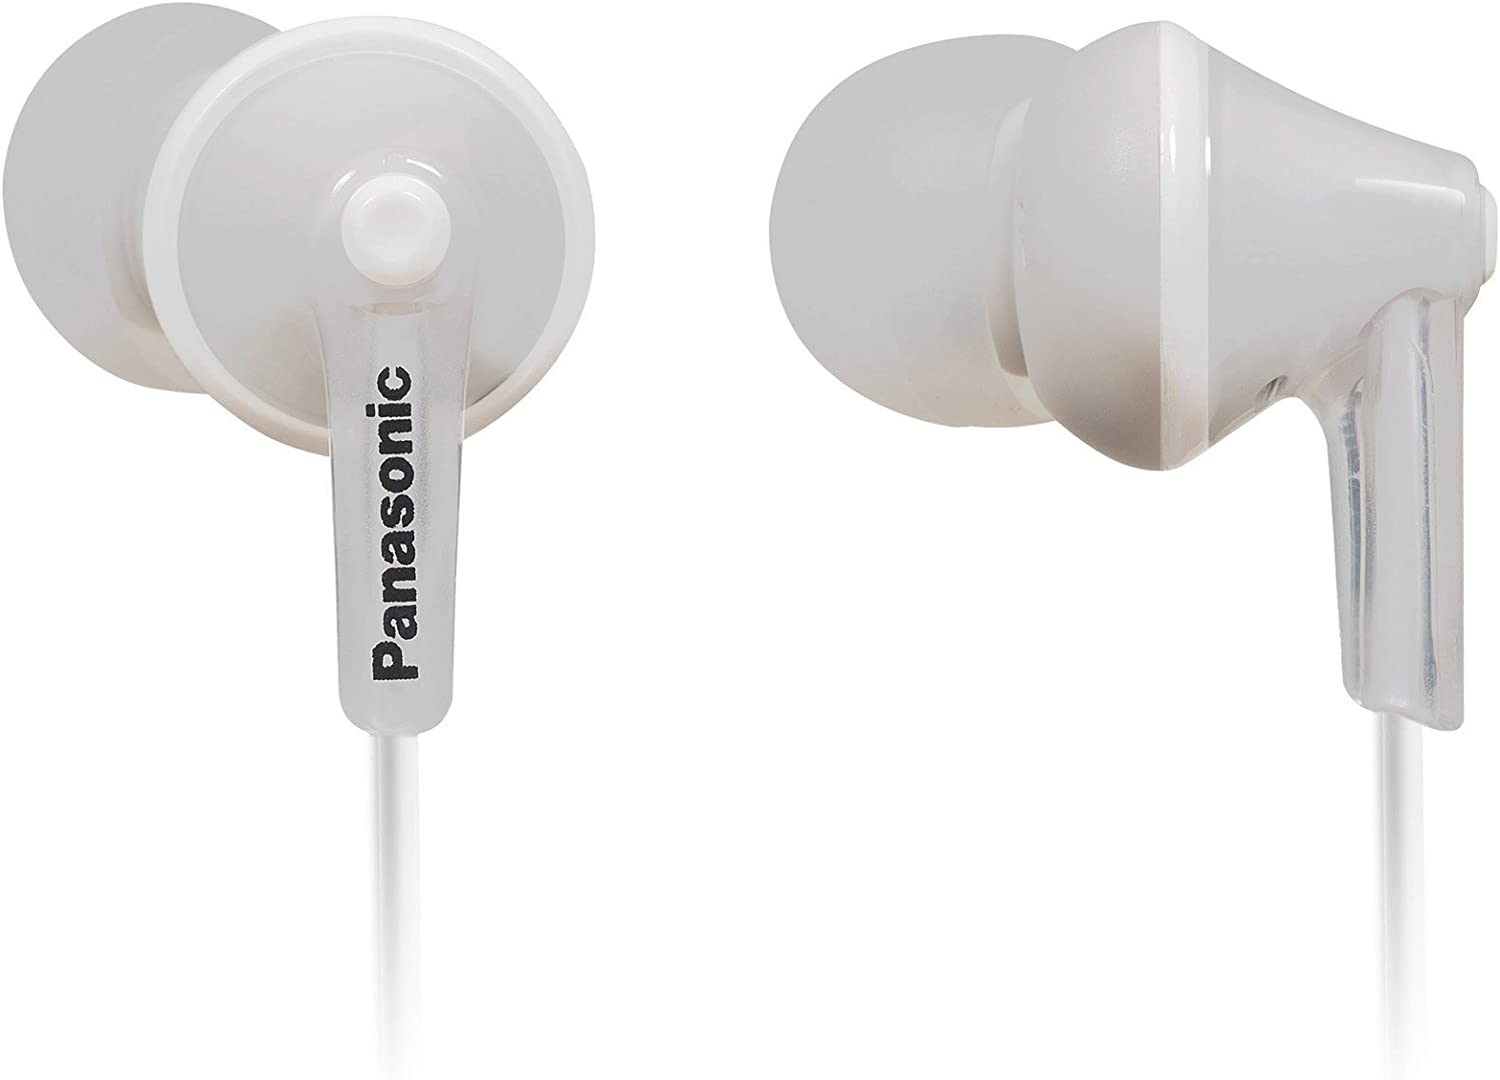 PANASONIC ErgoFit Earbud Headphones with Microphone and Call Controller Compatible with iPhone, Android and Blackberry - RP-TCM125-W - In-Ear (White)